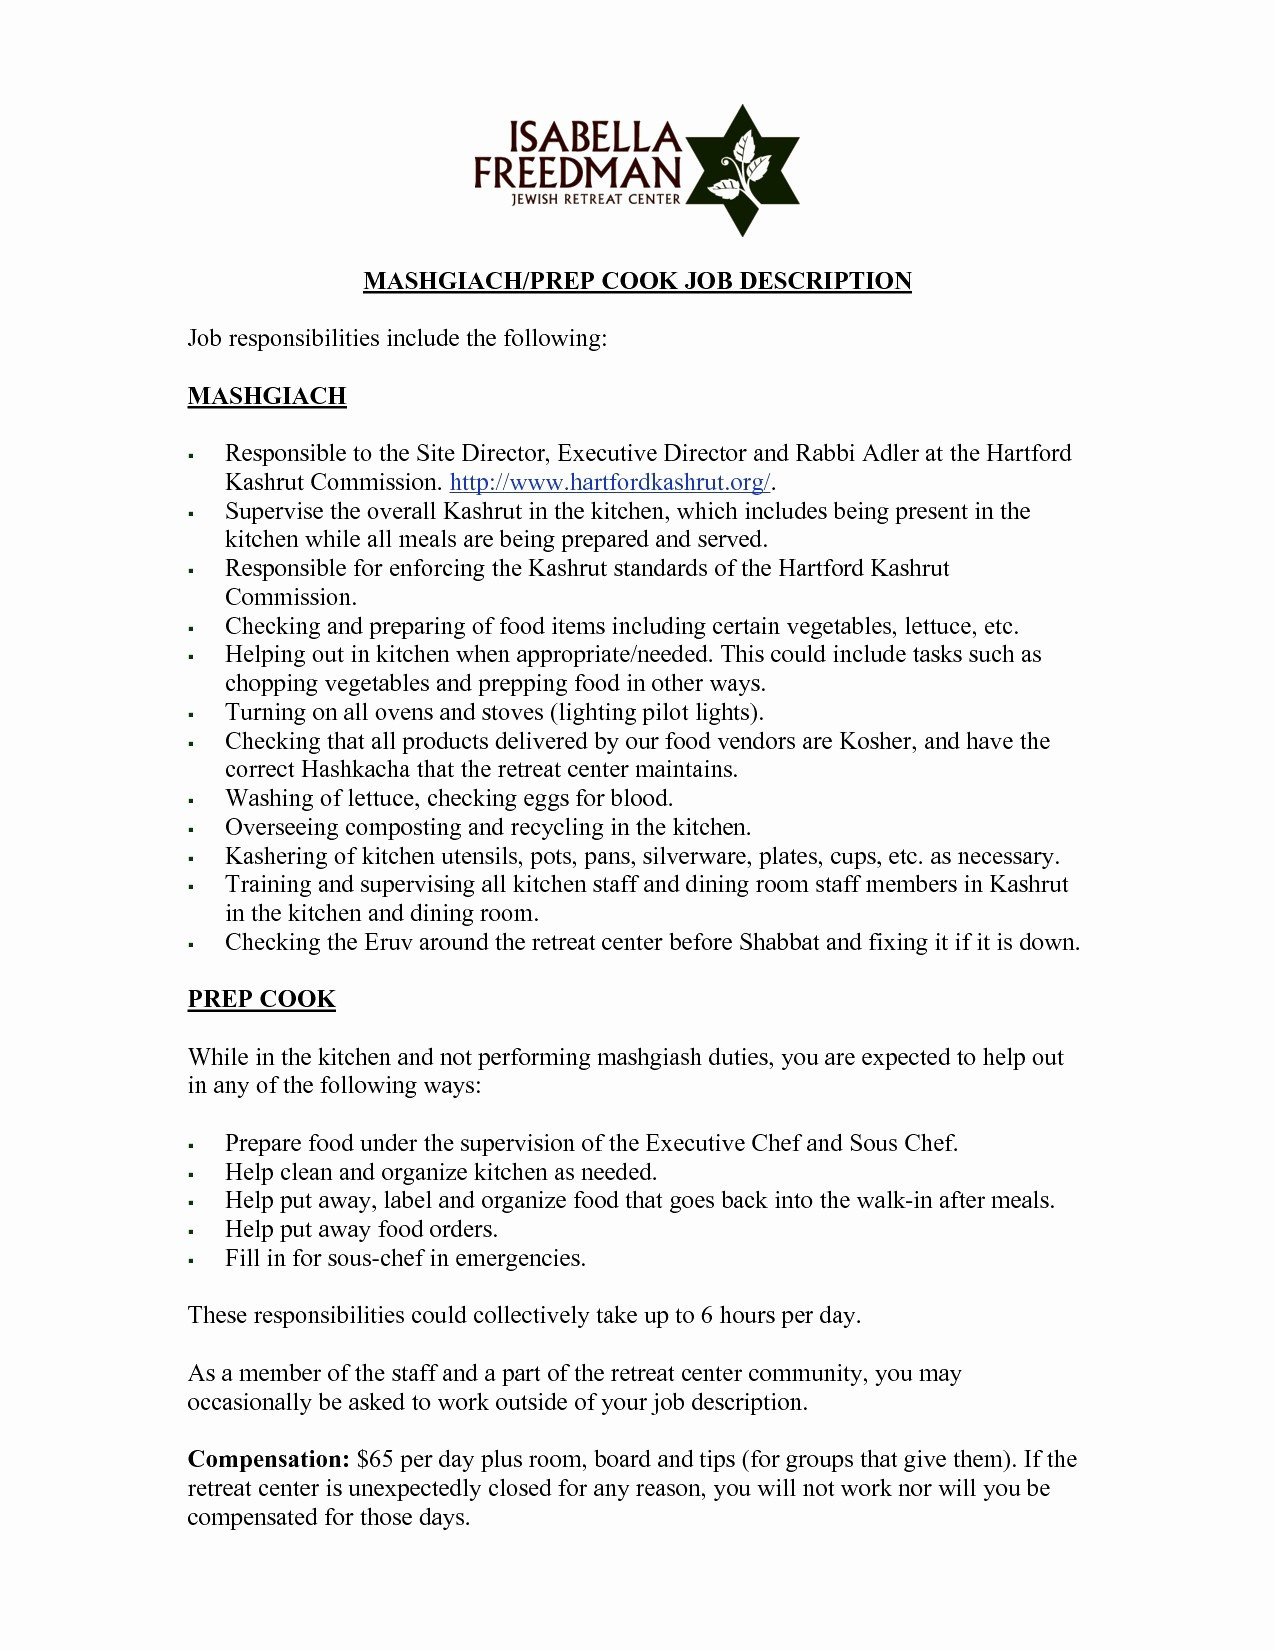 What to Include In Your Resume - Customer Service Executive Job Description Resume Reference Resume